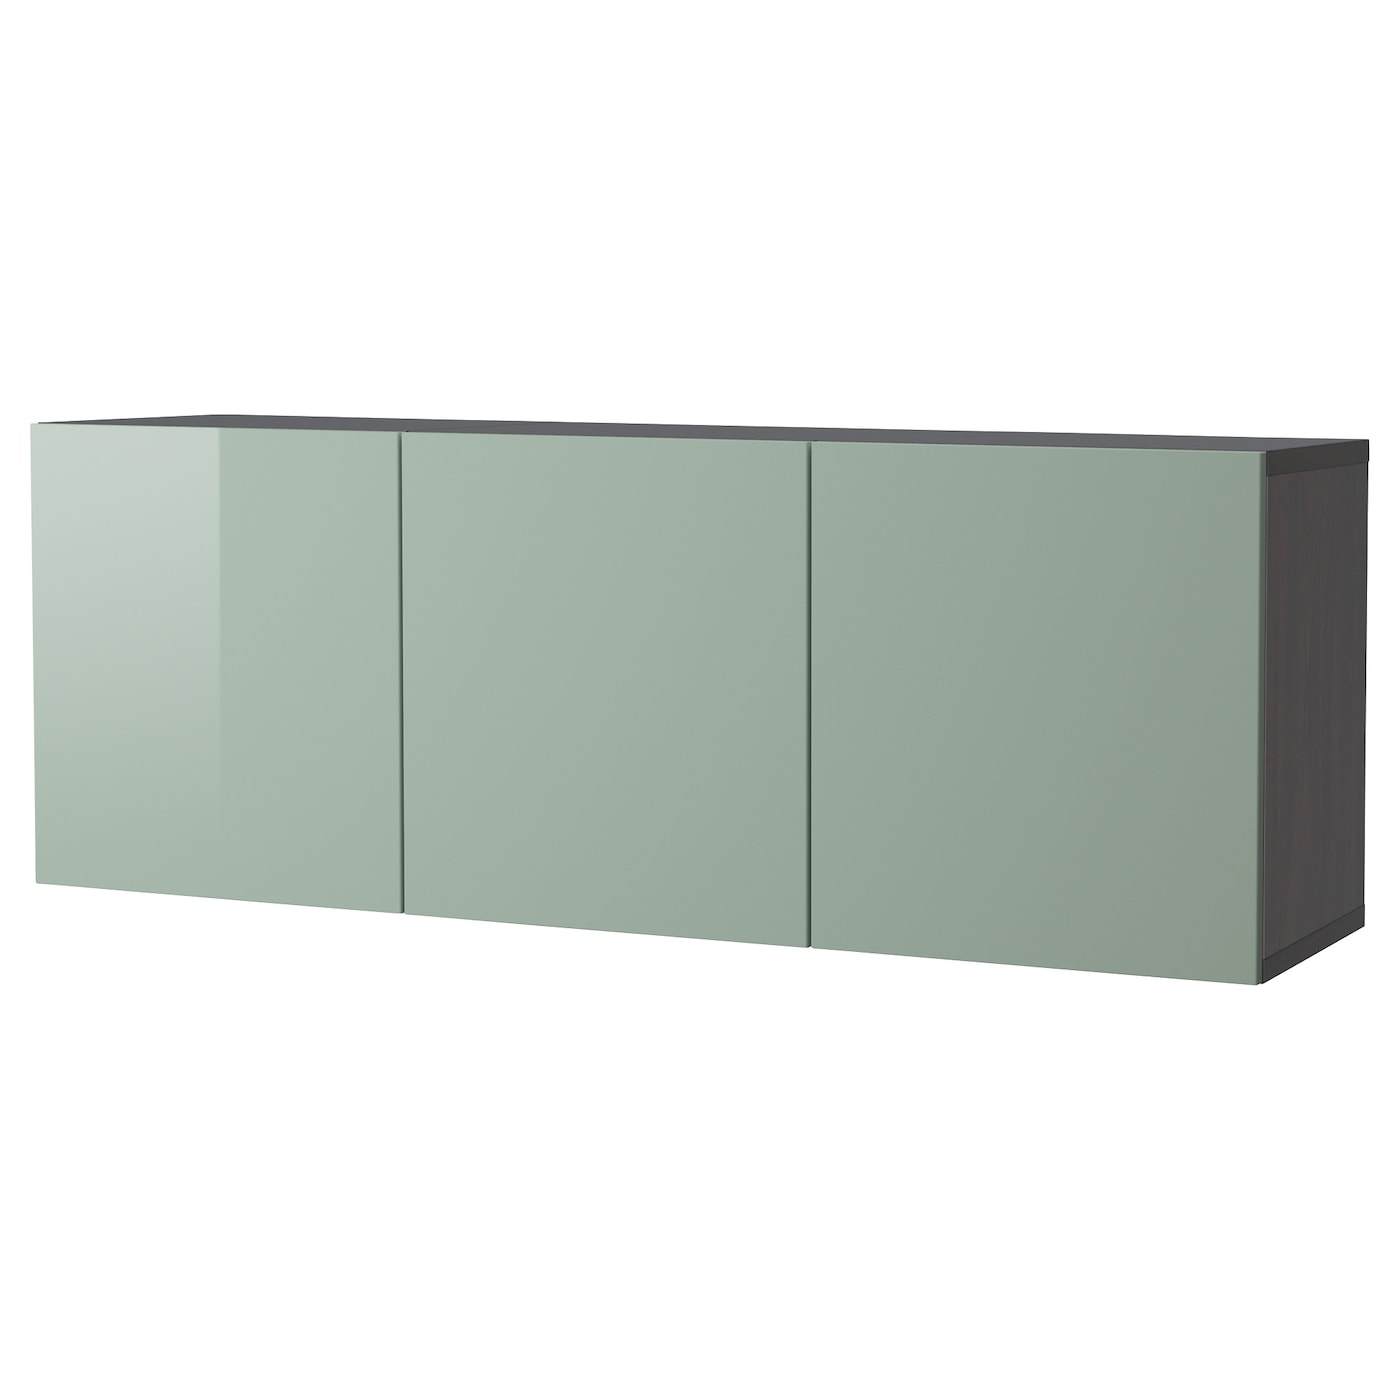 best combinaison rangement murale brun noir selsviken brillant gris vert clair 180 x 40 x 64 cm. Black Bedroom Furniture Sets. Home Design Ideas